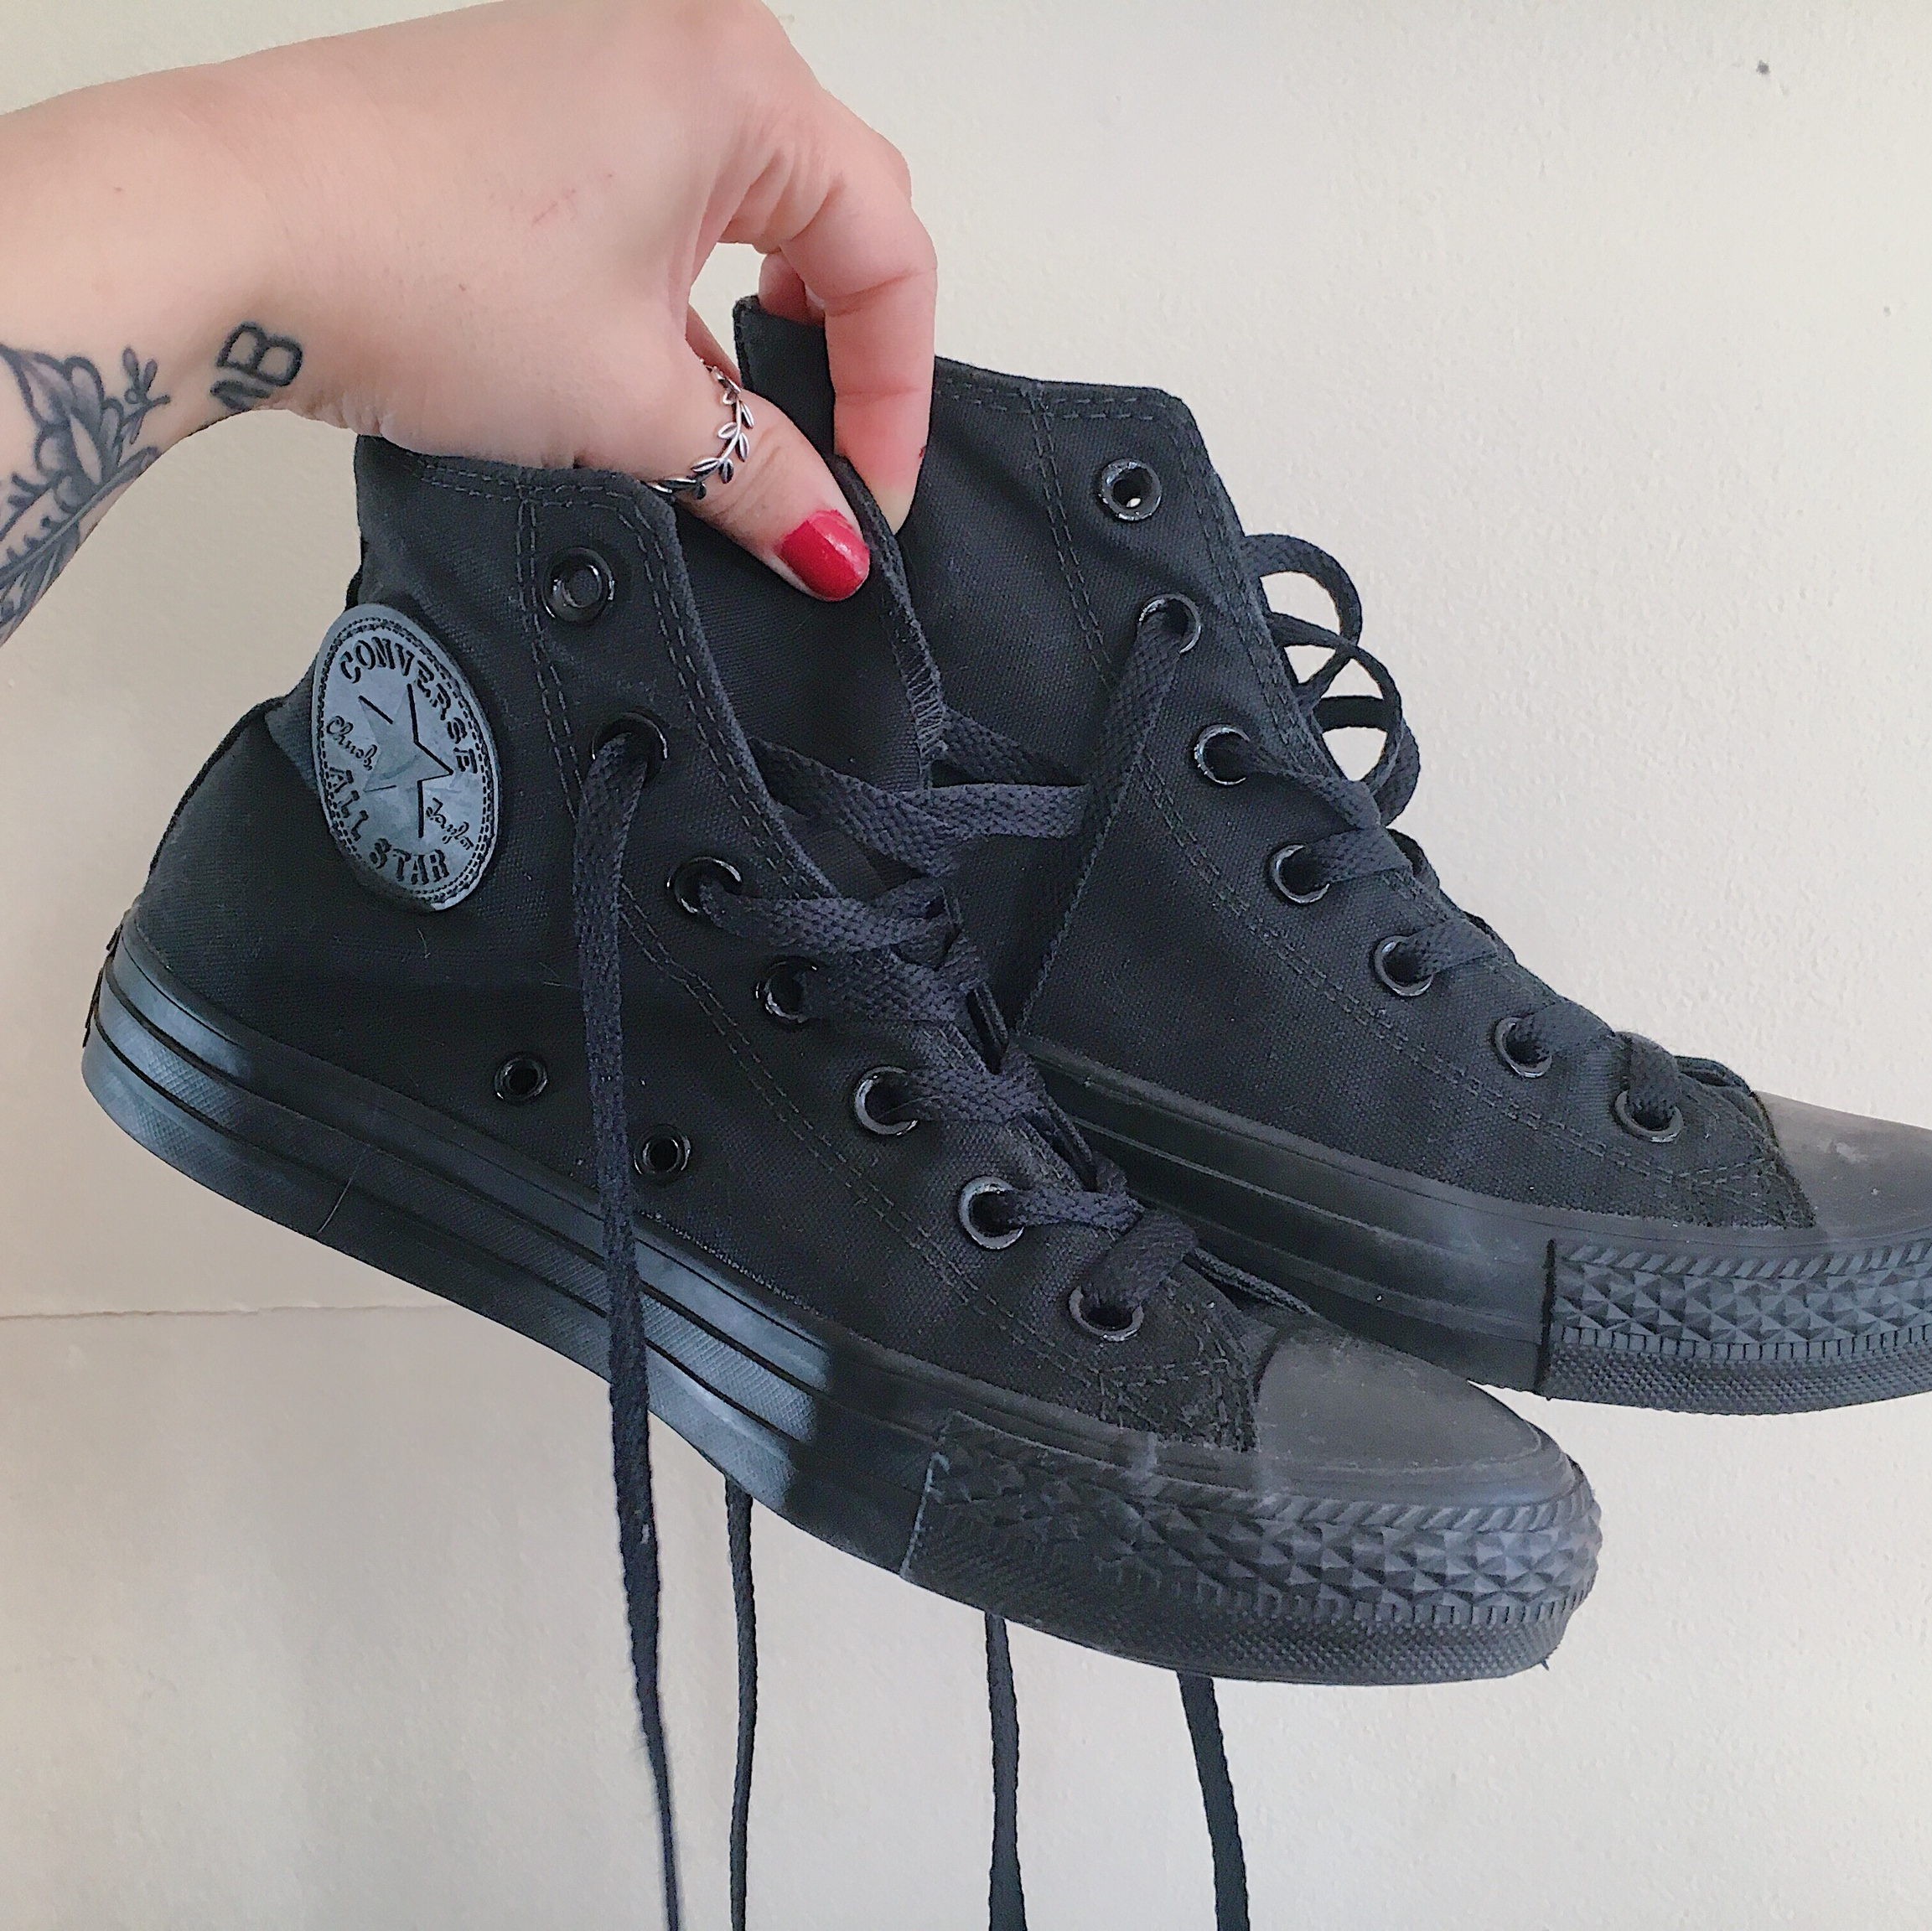 Black Converse All Star Chuck Taylor High Top Sneakers Like - Depop 214131be9